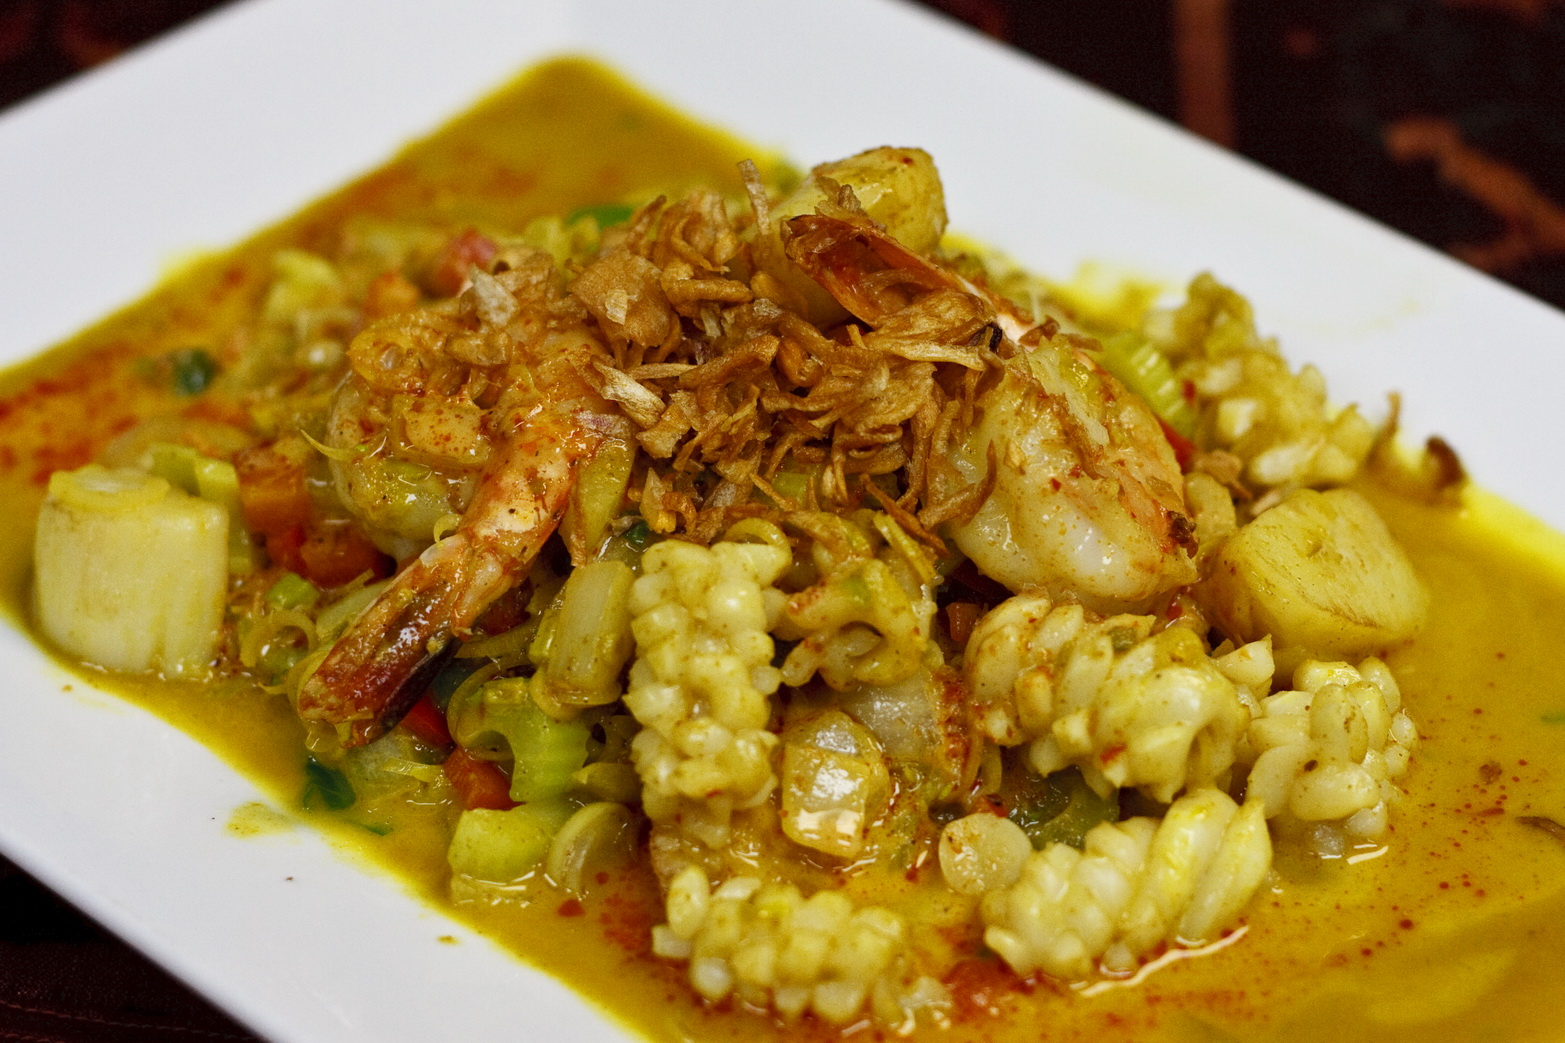 (23) Spicy Seafood Lemongrass Image